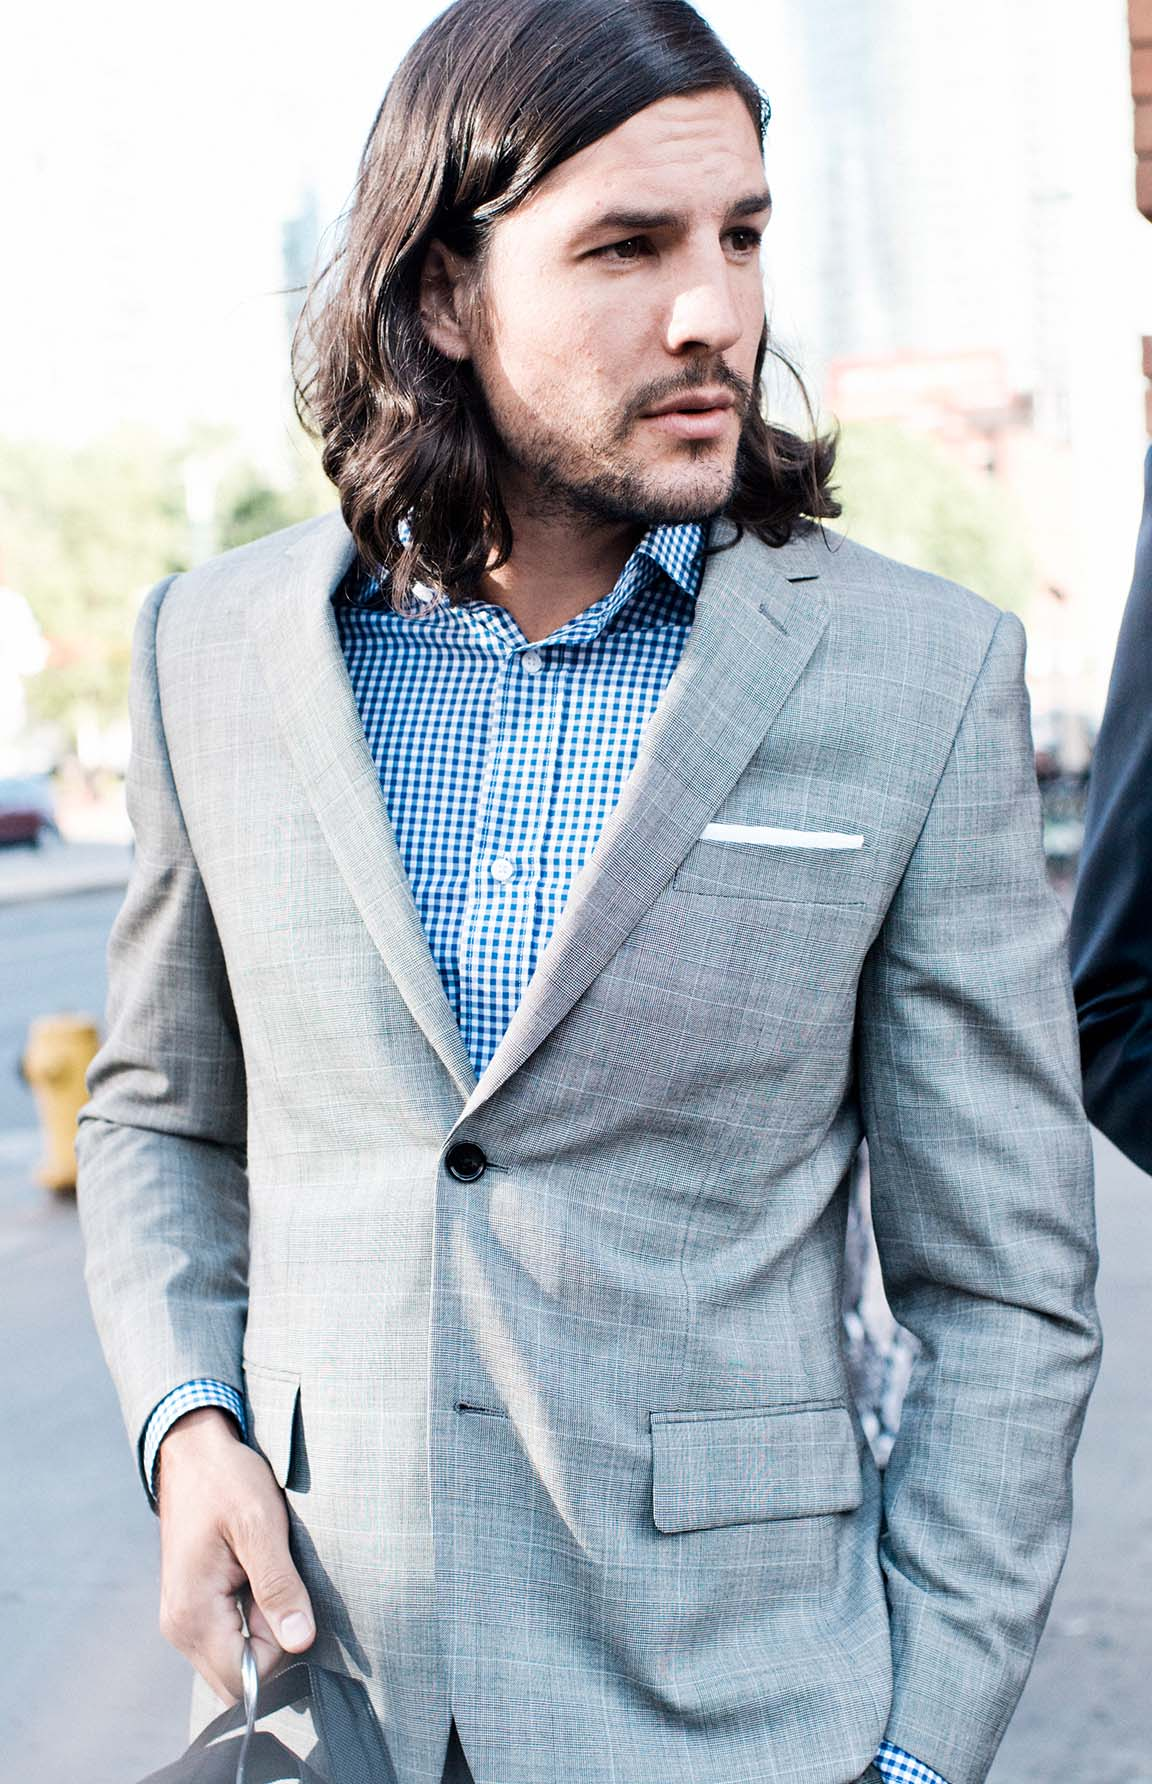 Relax your look by leaving the vest and tie at home